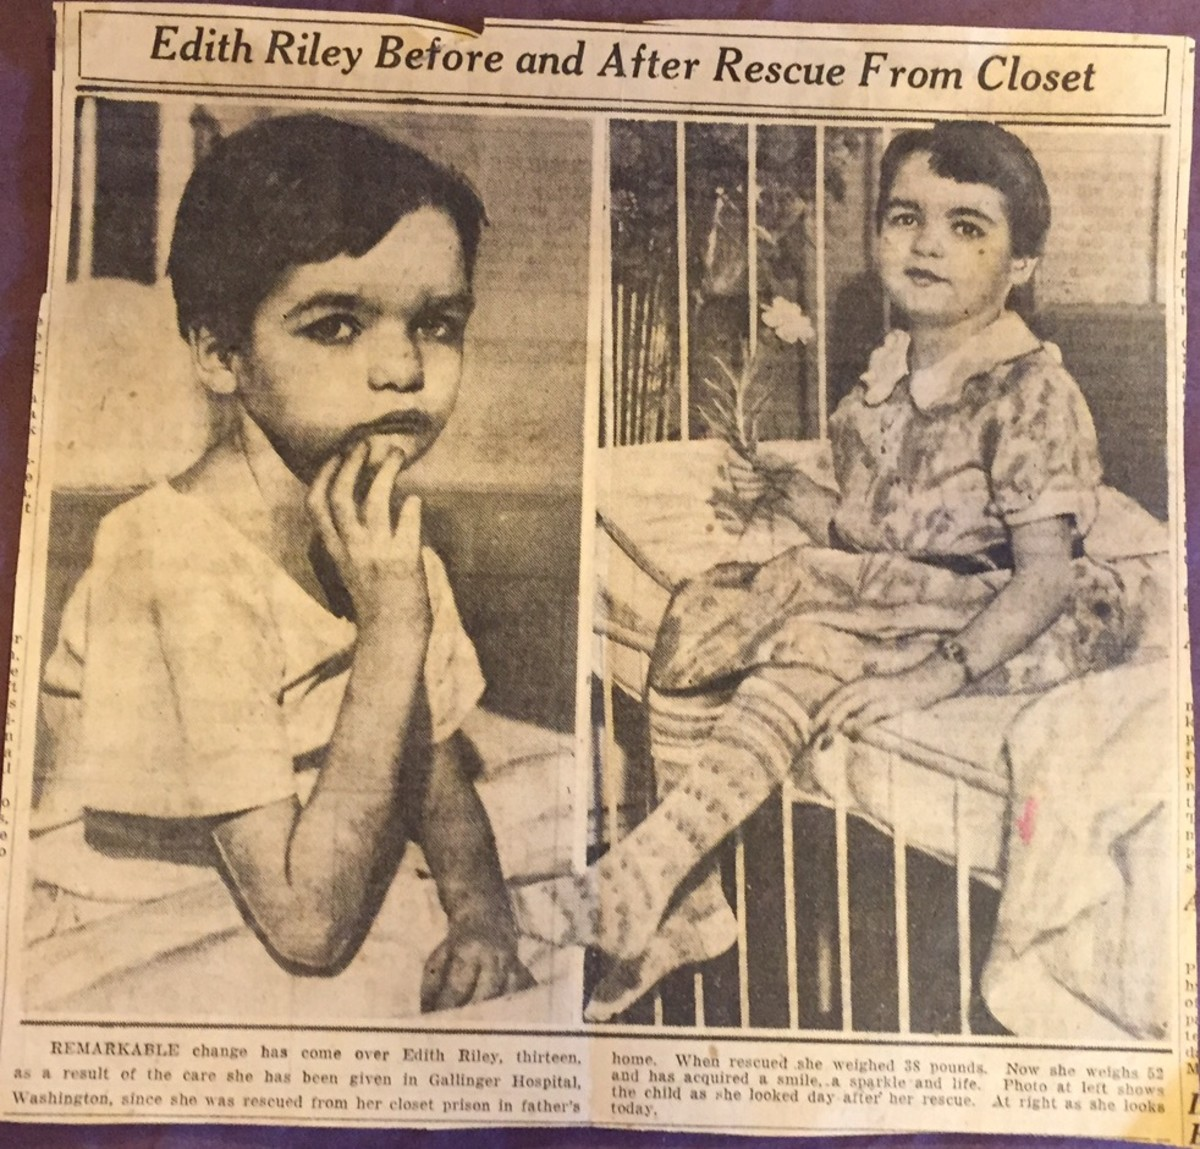 Edith Riley, of Washington State, before and after her rescue from the closet in which her parents imprisoned her.